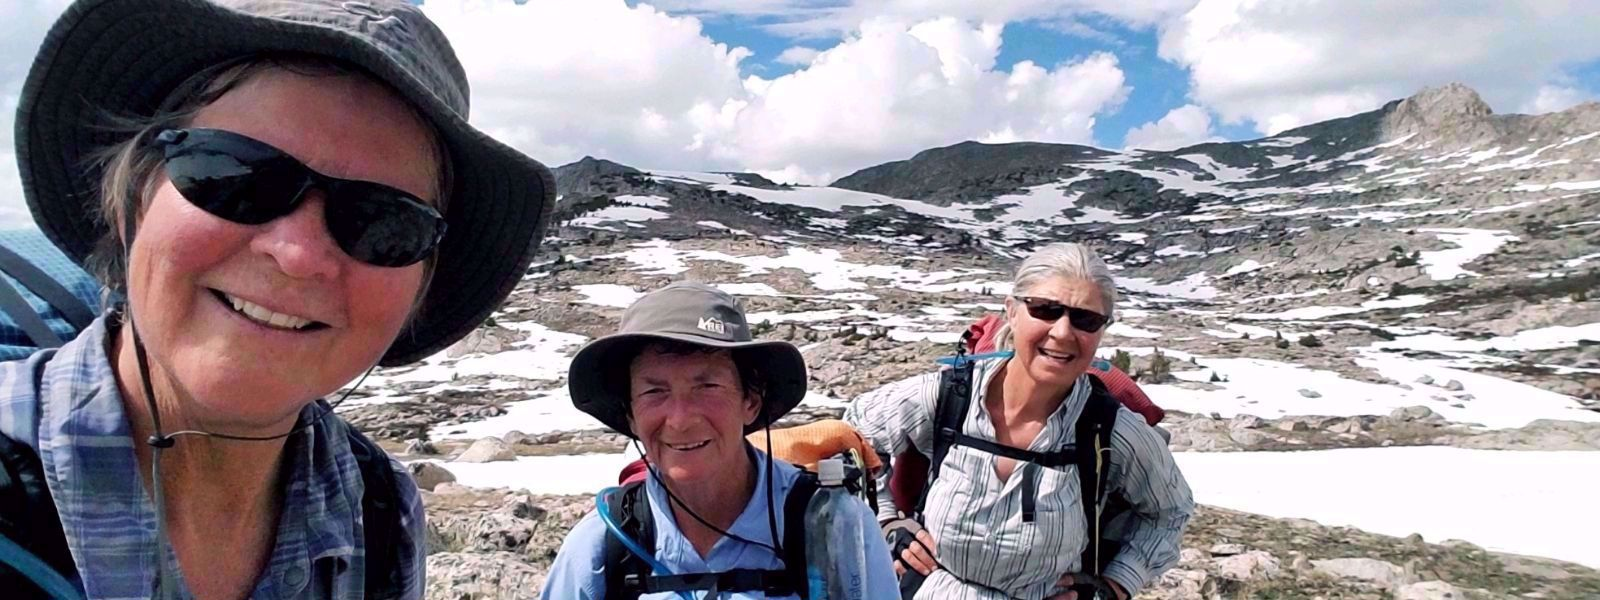 Interested in long-distance hiking? Then These Top 5 Tips from the Wander Women are for You